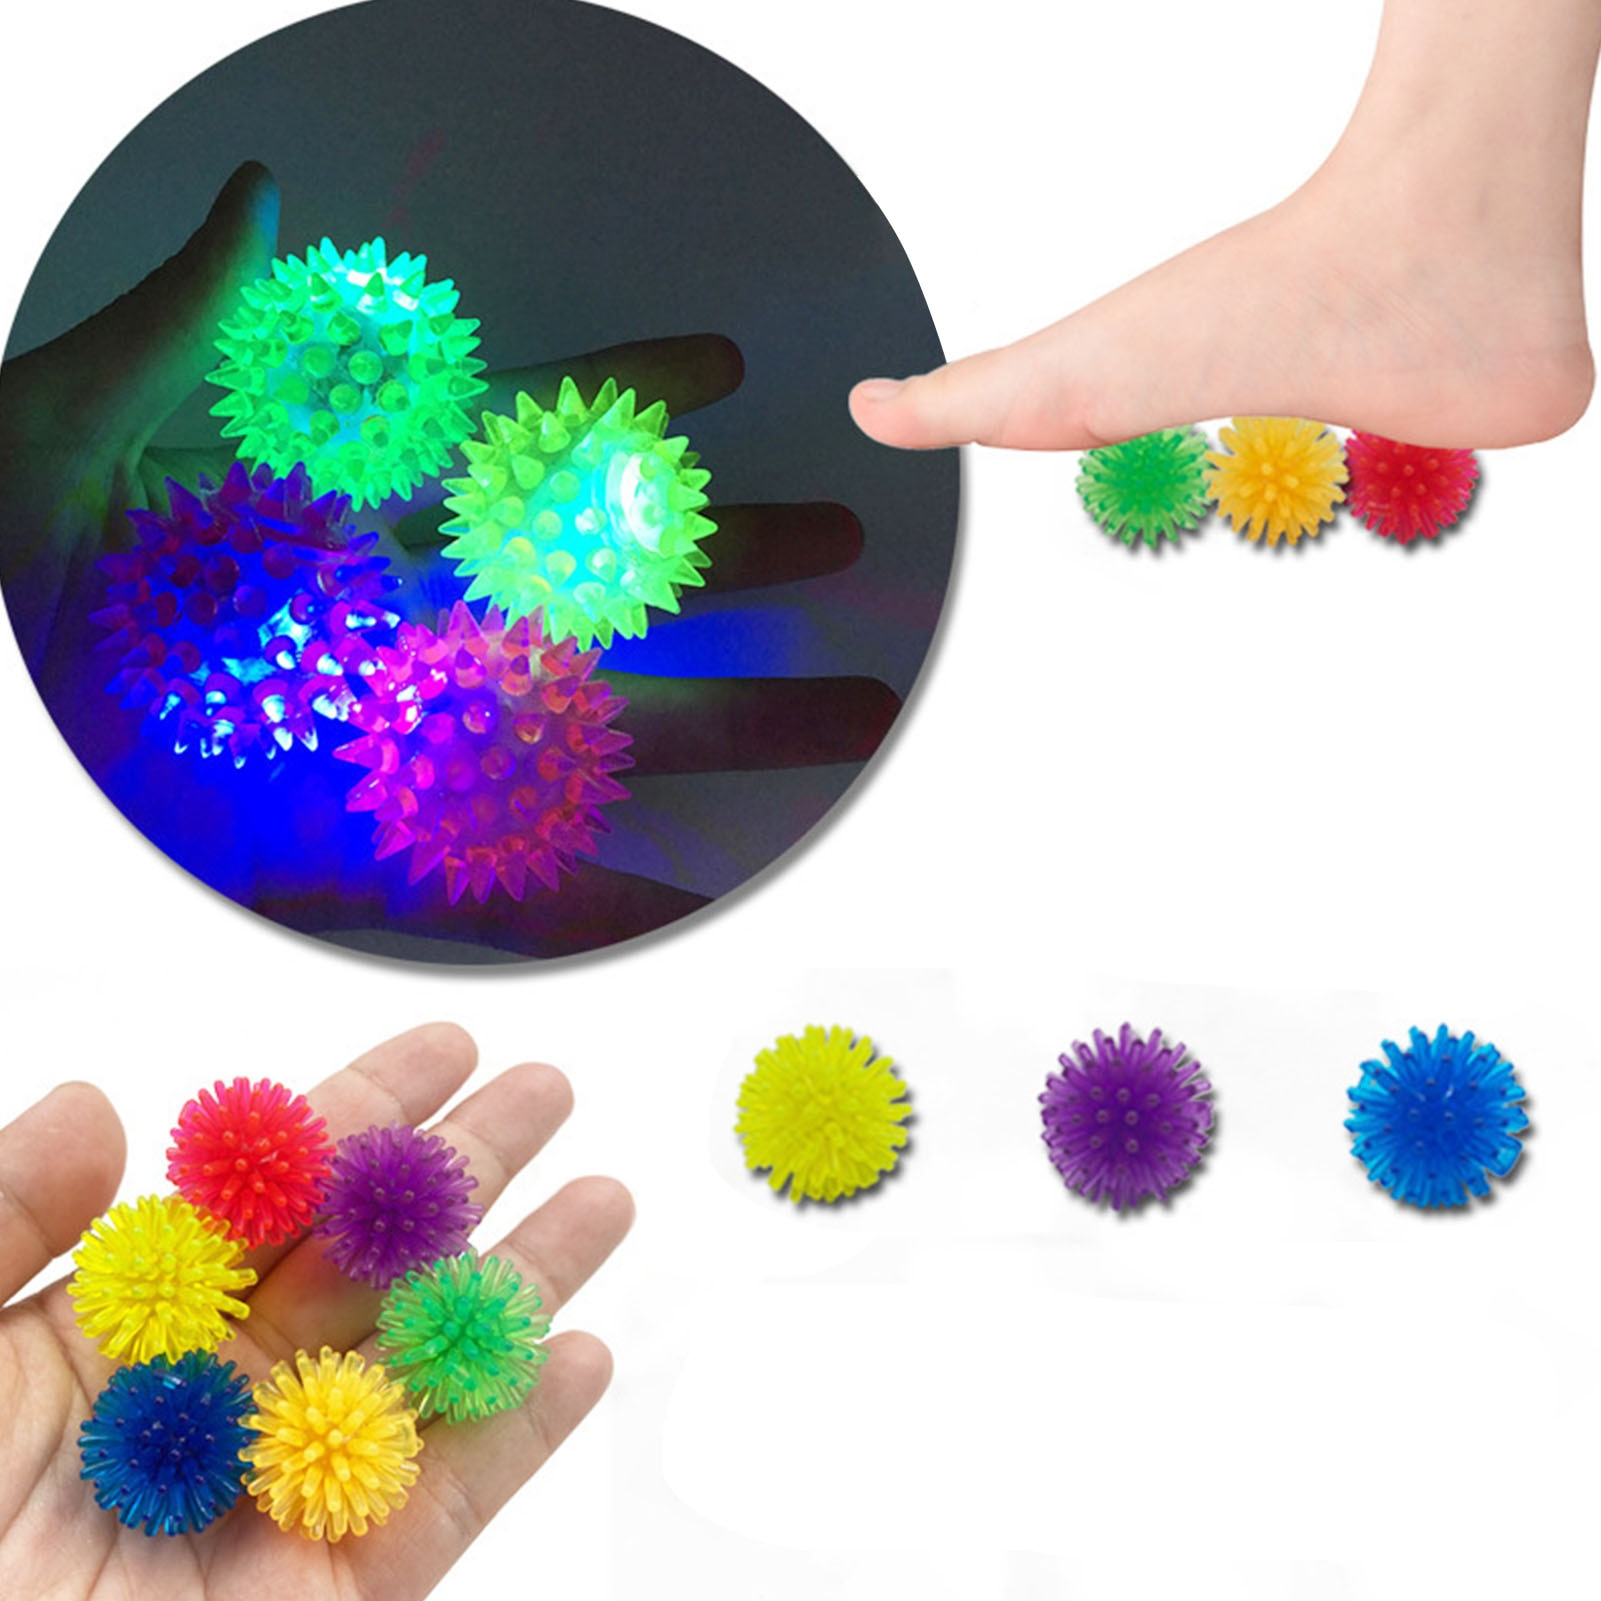 Fidget Toys Set Marble Ball For Autism Anxiety Stress Relief Squeeze Toys Pop Bubble For Kids Adults Decompression Suit enlarge